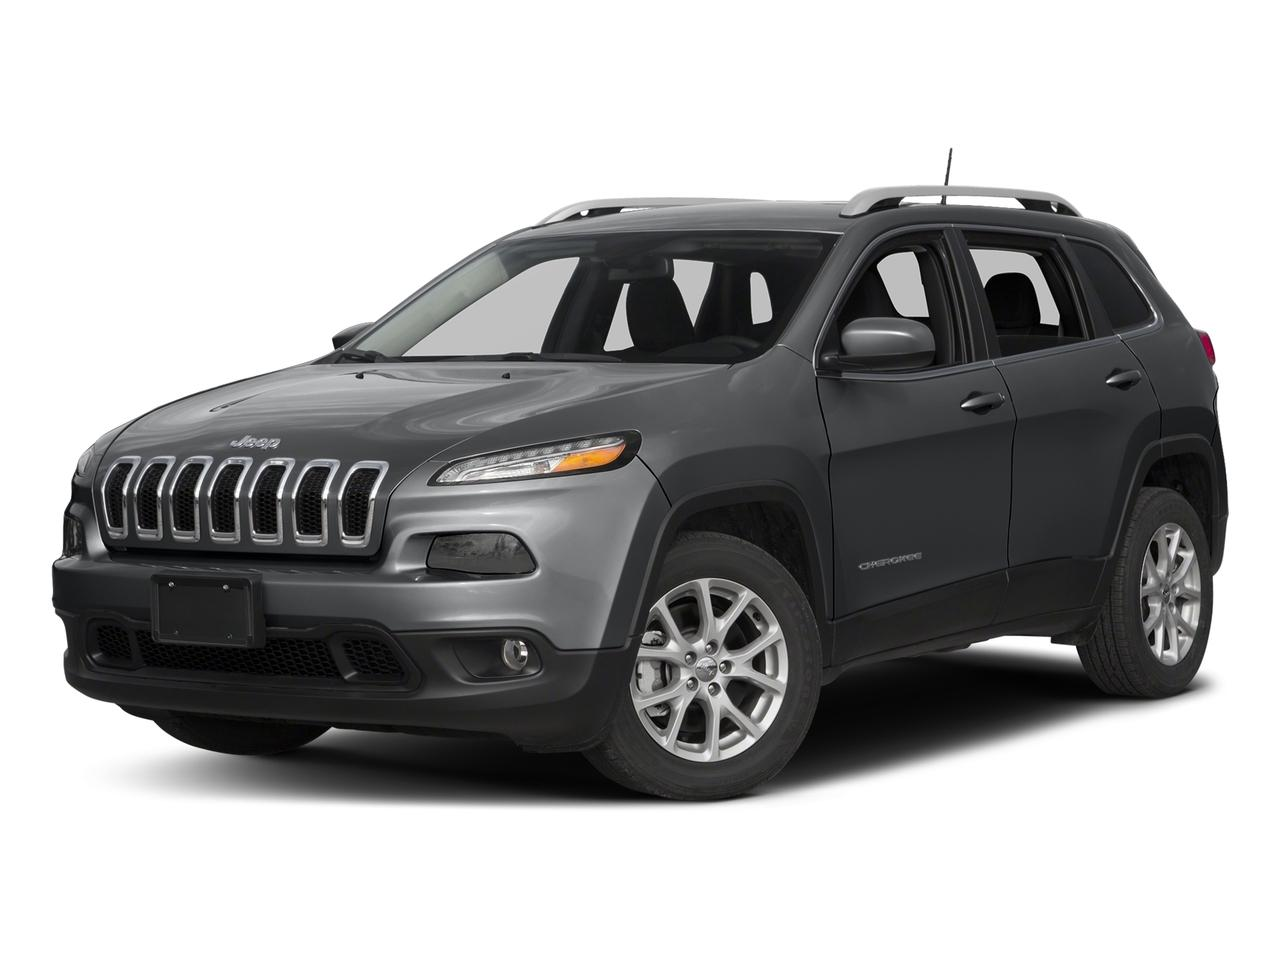 2017 Jeep Cherokee Vehicle Photo in Peoria, IL 61615